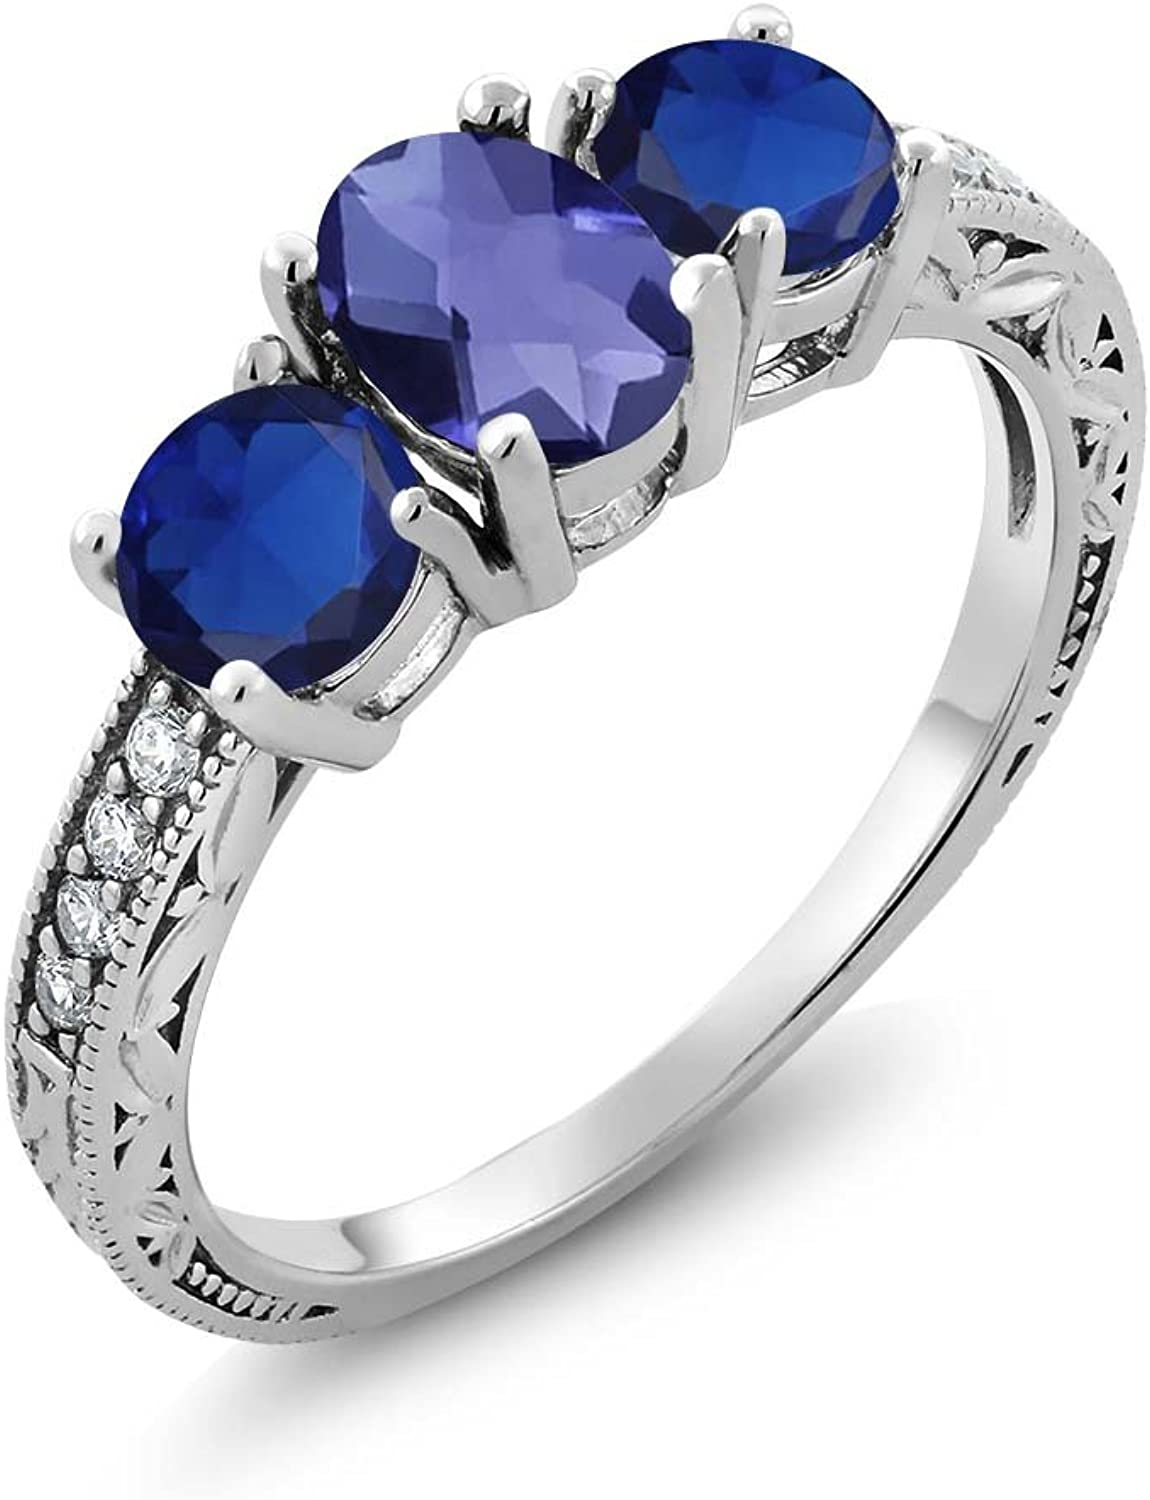 1.97 Ct Oval Checkerboard bluee Iolite bluee Simulated Sapphire 925 Silver Ring